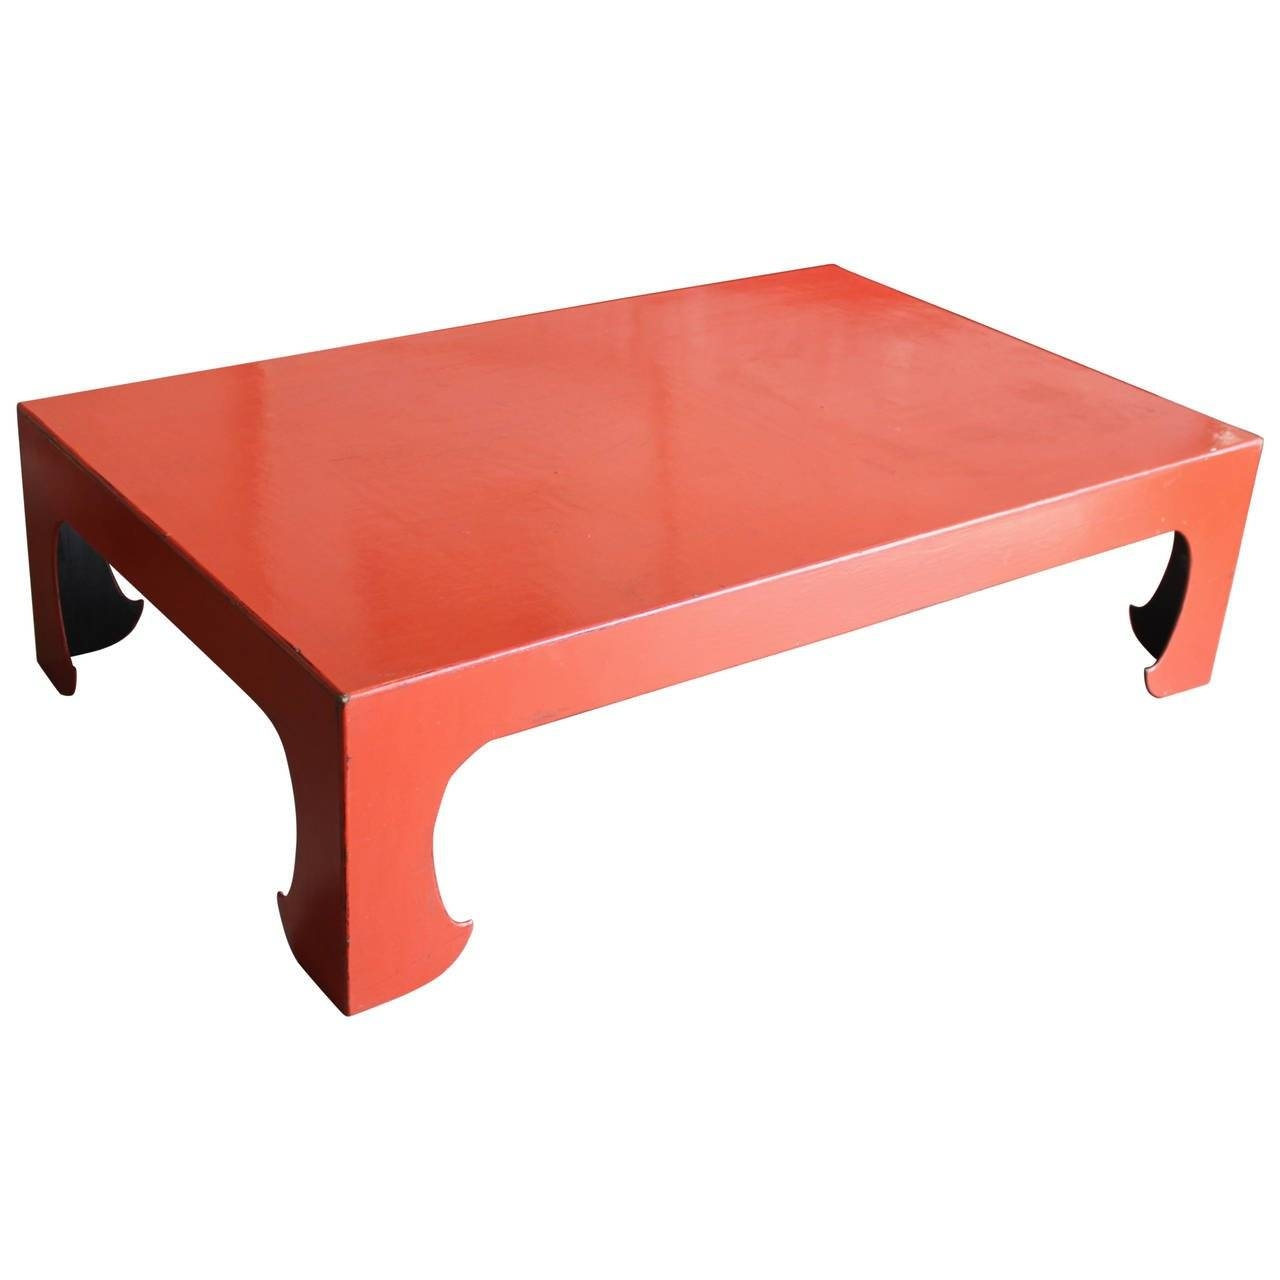 Vintage Red Coral Lacquered Chinese Coffee Table For Sale At 1Stdibs pertaining to Lacquer Coffee Tables (Image 30 of 30)